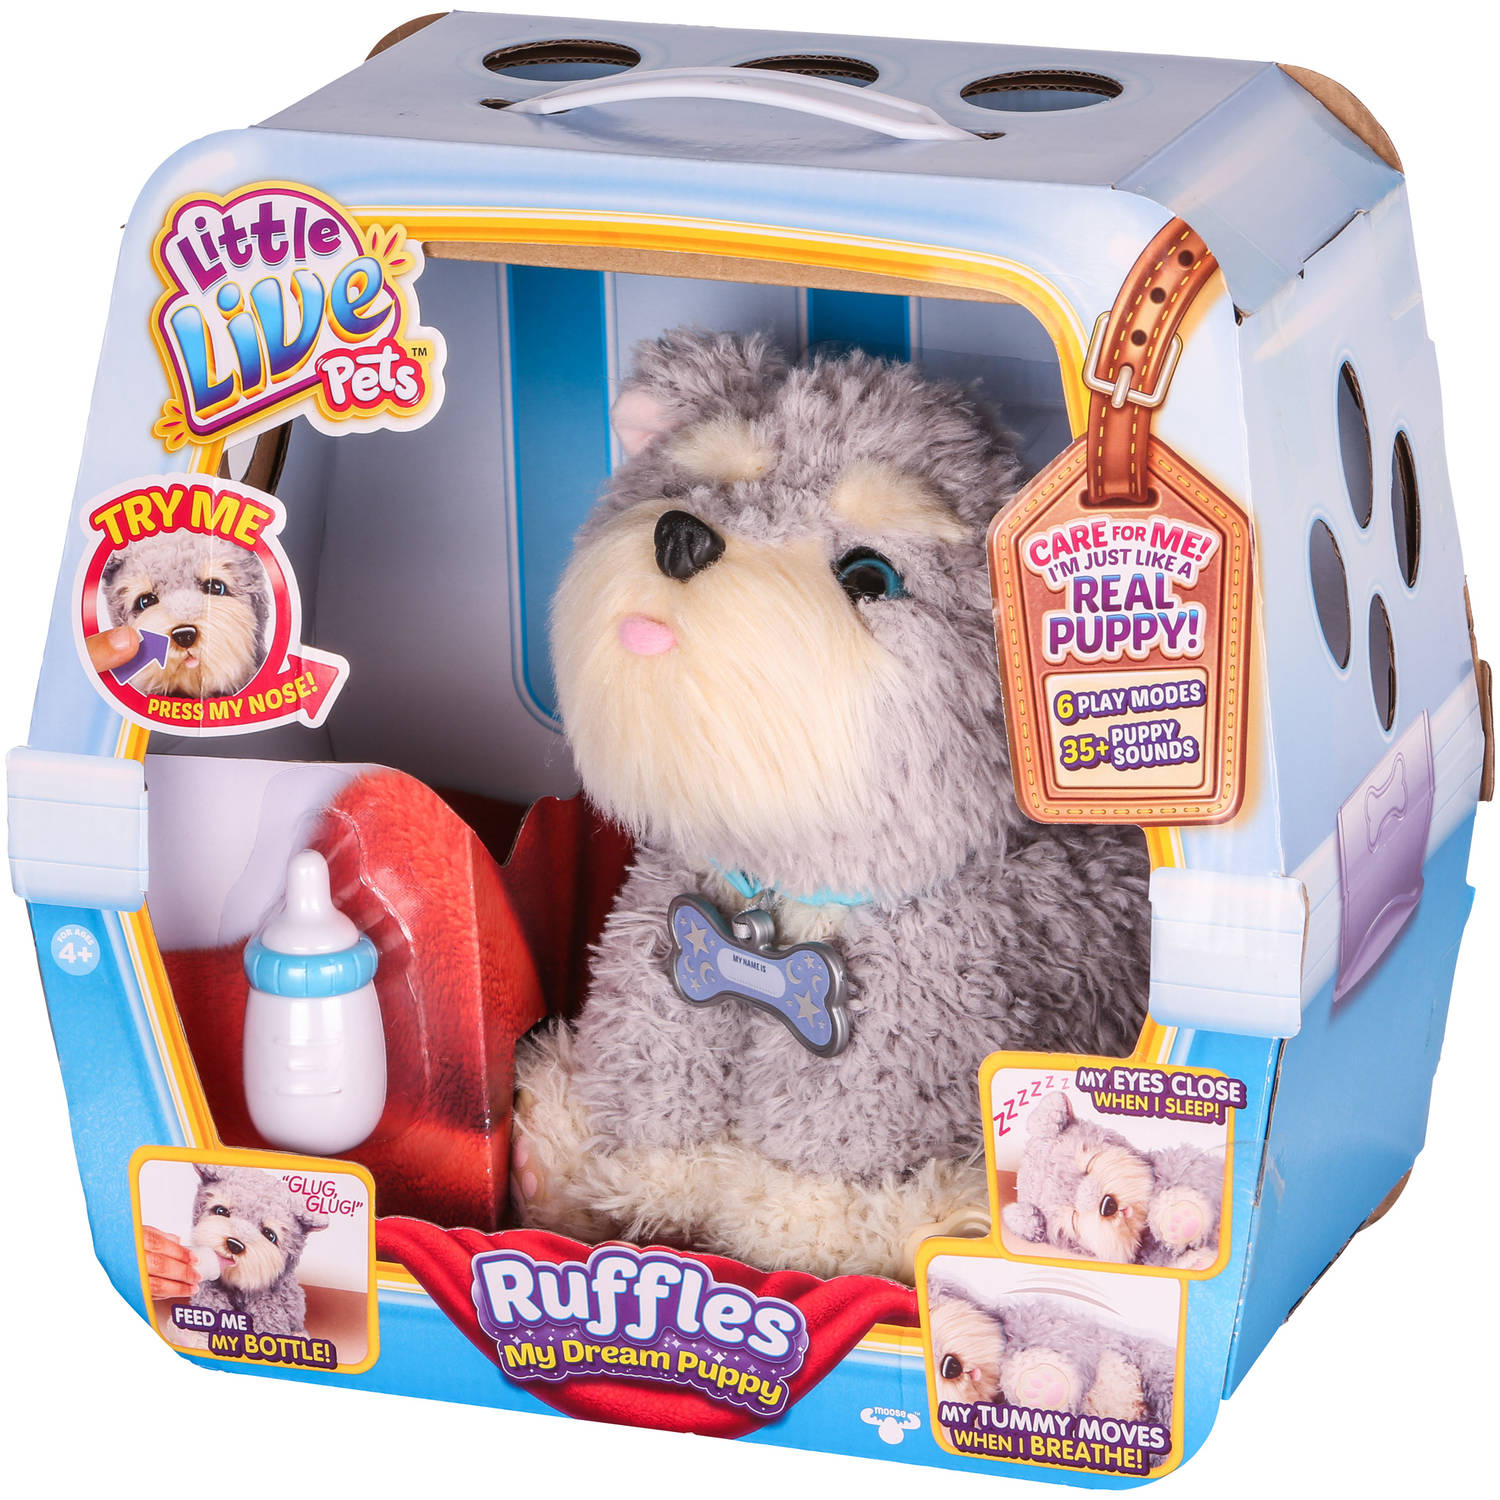 Walmart Toys Puppy : The best of pet toys for kids pictures children ideas